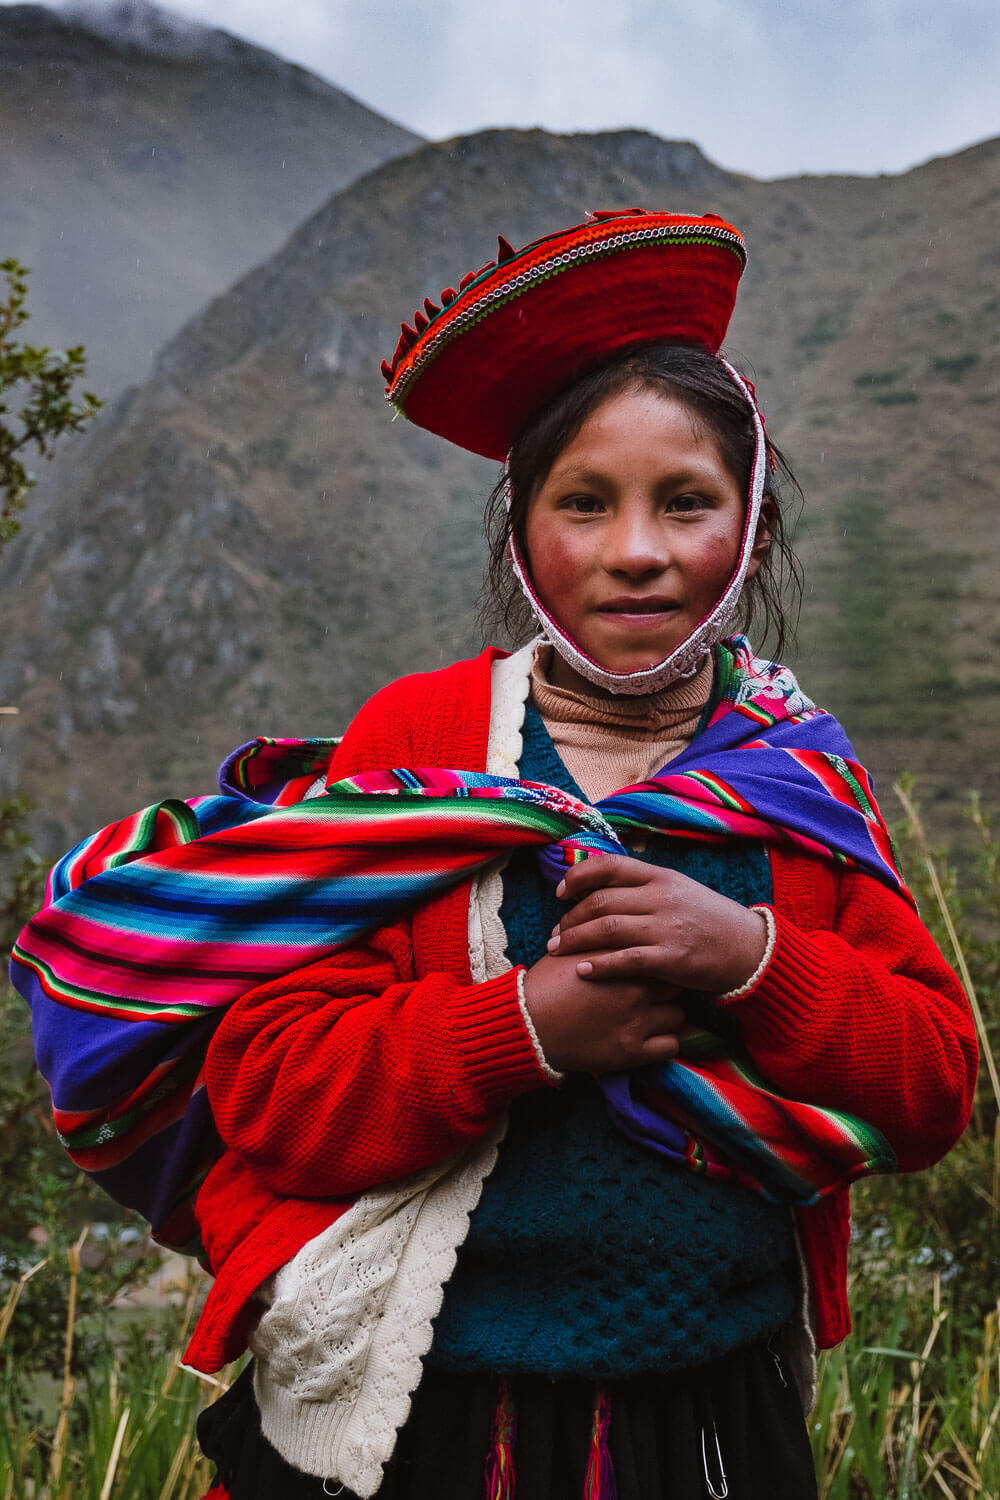 "The young daughter who has already mastered many weaving skills. The weavers of Patacancha, The Sacred Valley, Peru. Travel photography and guide by © Natasha Lequepeys for ""And Then I Met Yoko"". #peru #sacredvalley #patacancha #photoblog #travelblog #travelphotography #portraitphotography #travelitinerary #fujifilm #weaving #tradition #culture #people #andes #village #weavingdemonstration #cusco #ollantaytambo #travel #travelperu"